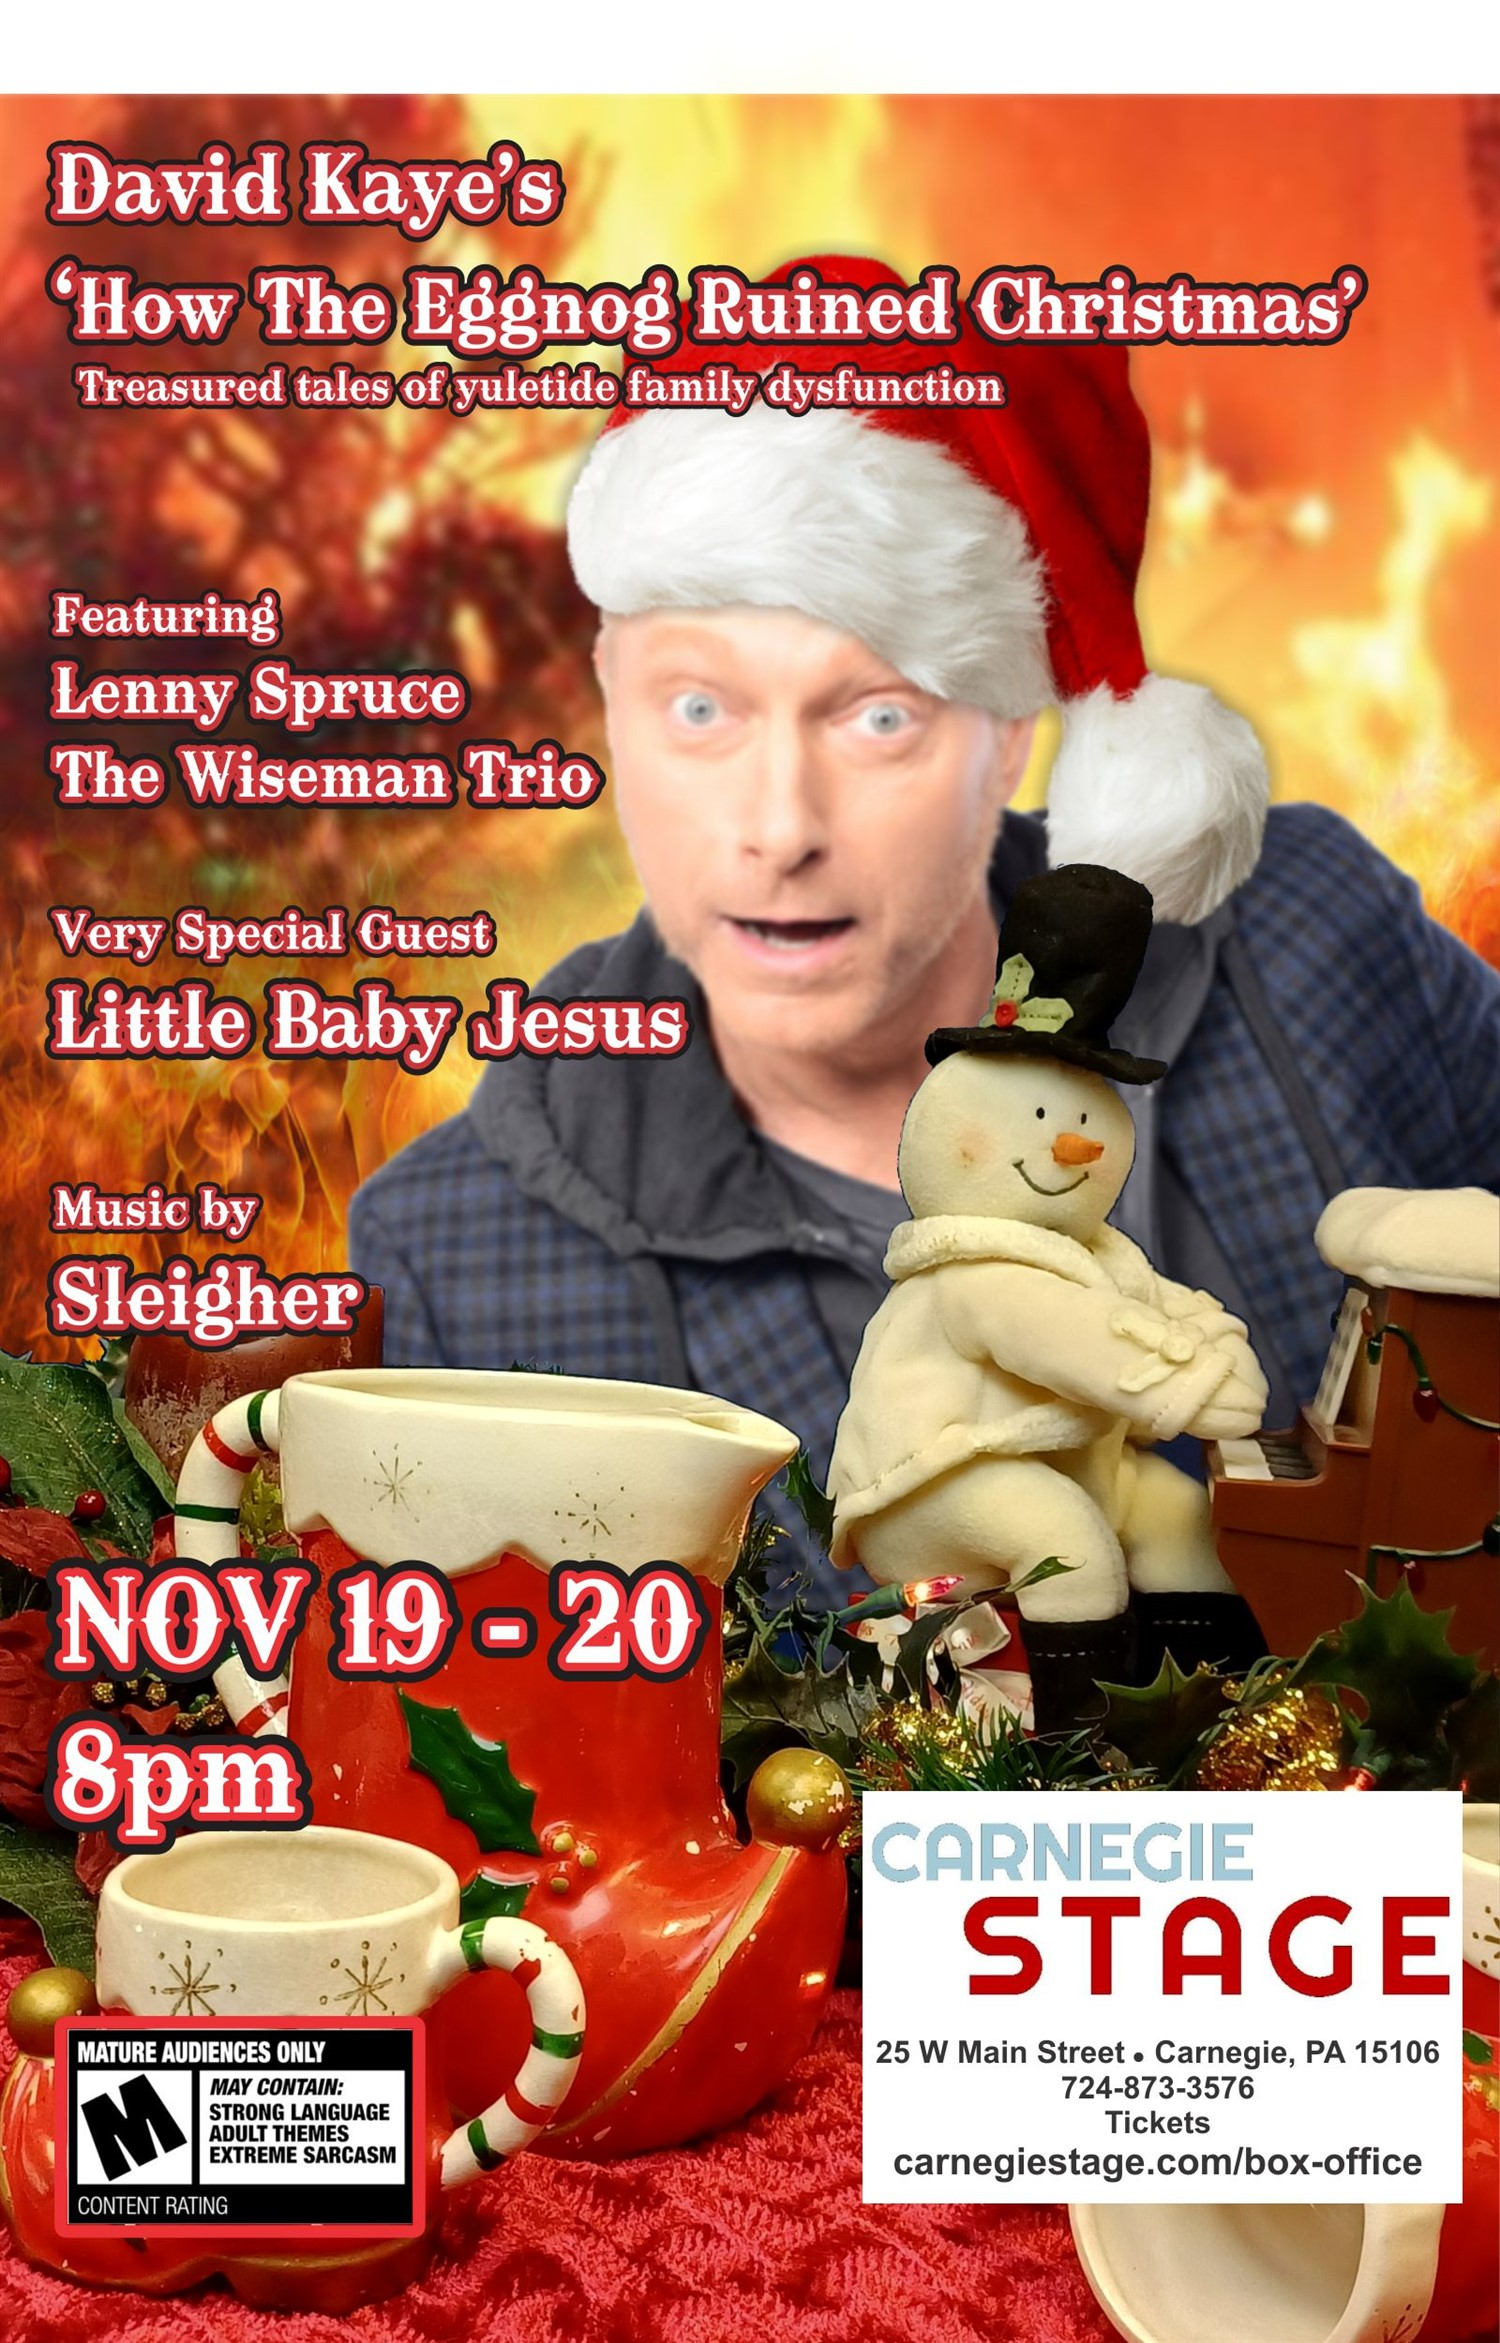 David Kaye's 'How The Eggnog Ruined Christmas' (Treasured tales of yuletide family disfunction) on Nov 22, 00:00@Carnegie Stage - regular 70 - Buy tickets and Get information on Carnegie Stage carnegiestage